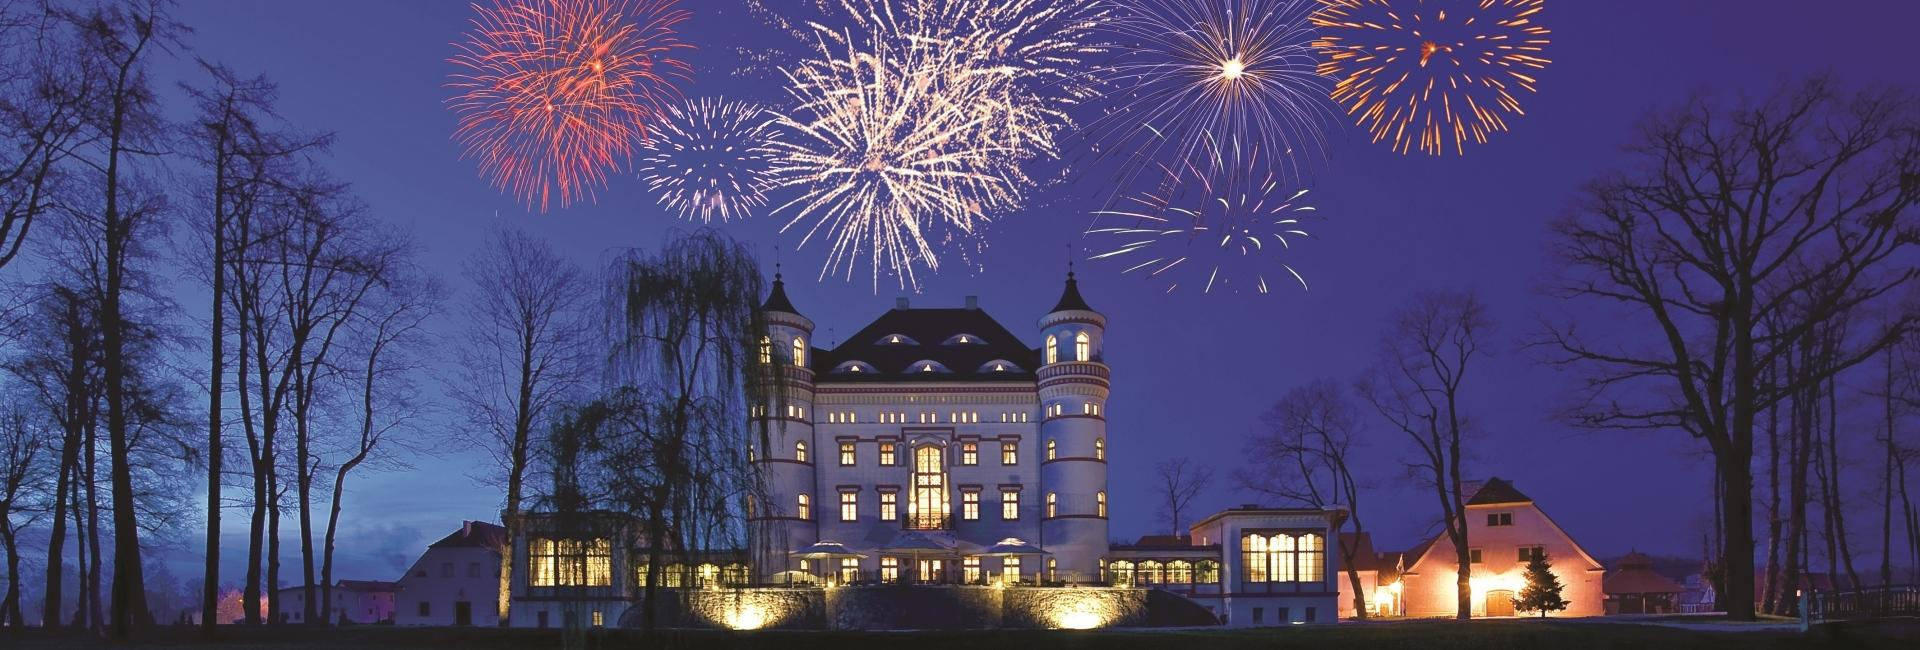 Fireworks at Wojanów Palace in Lower Silesia